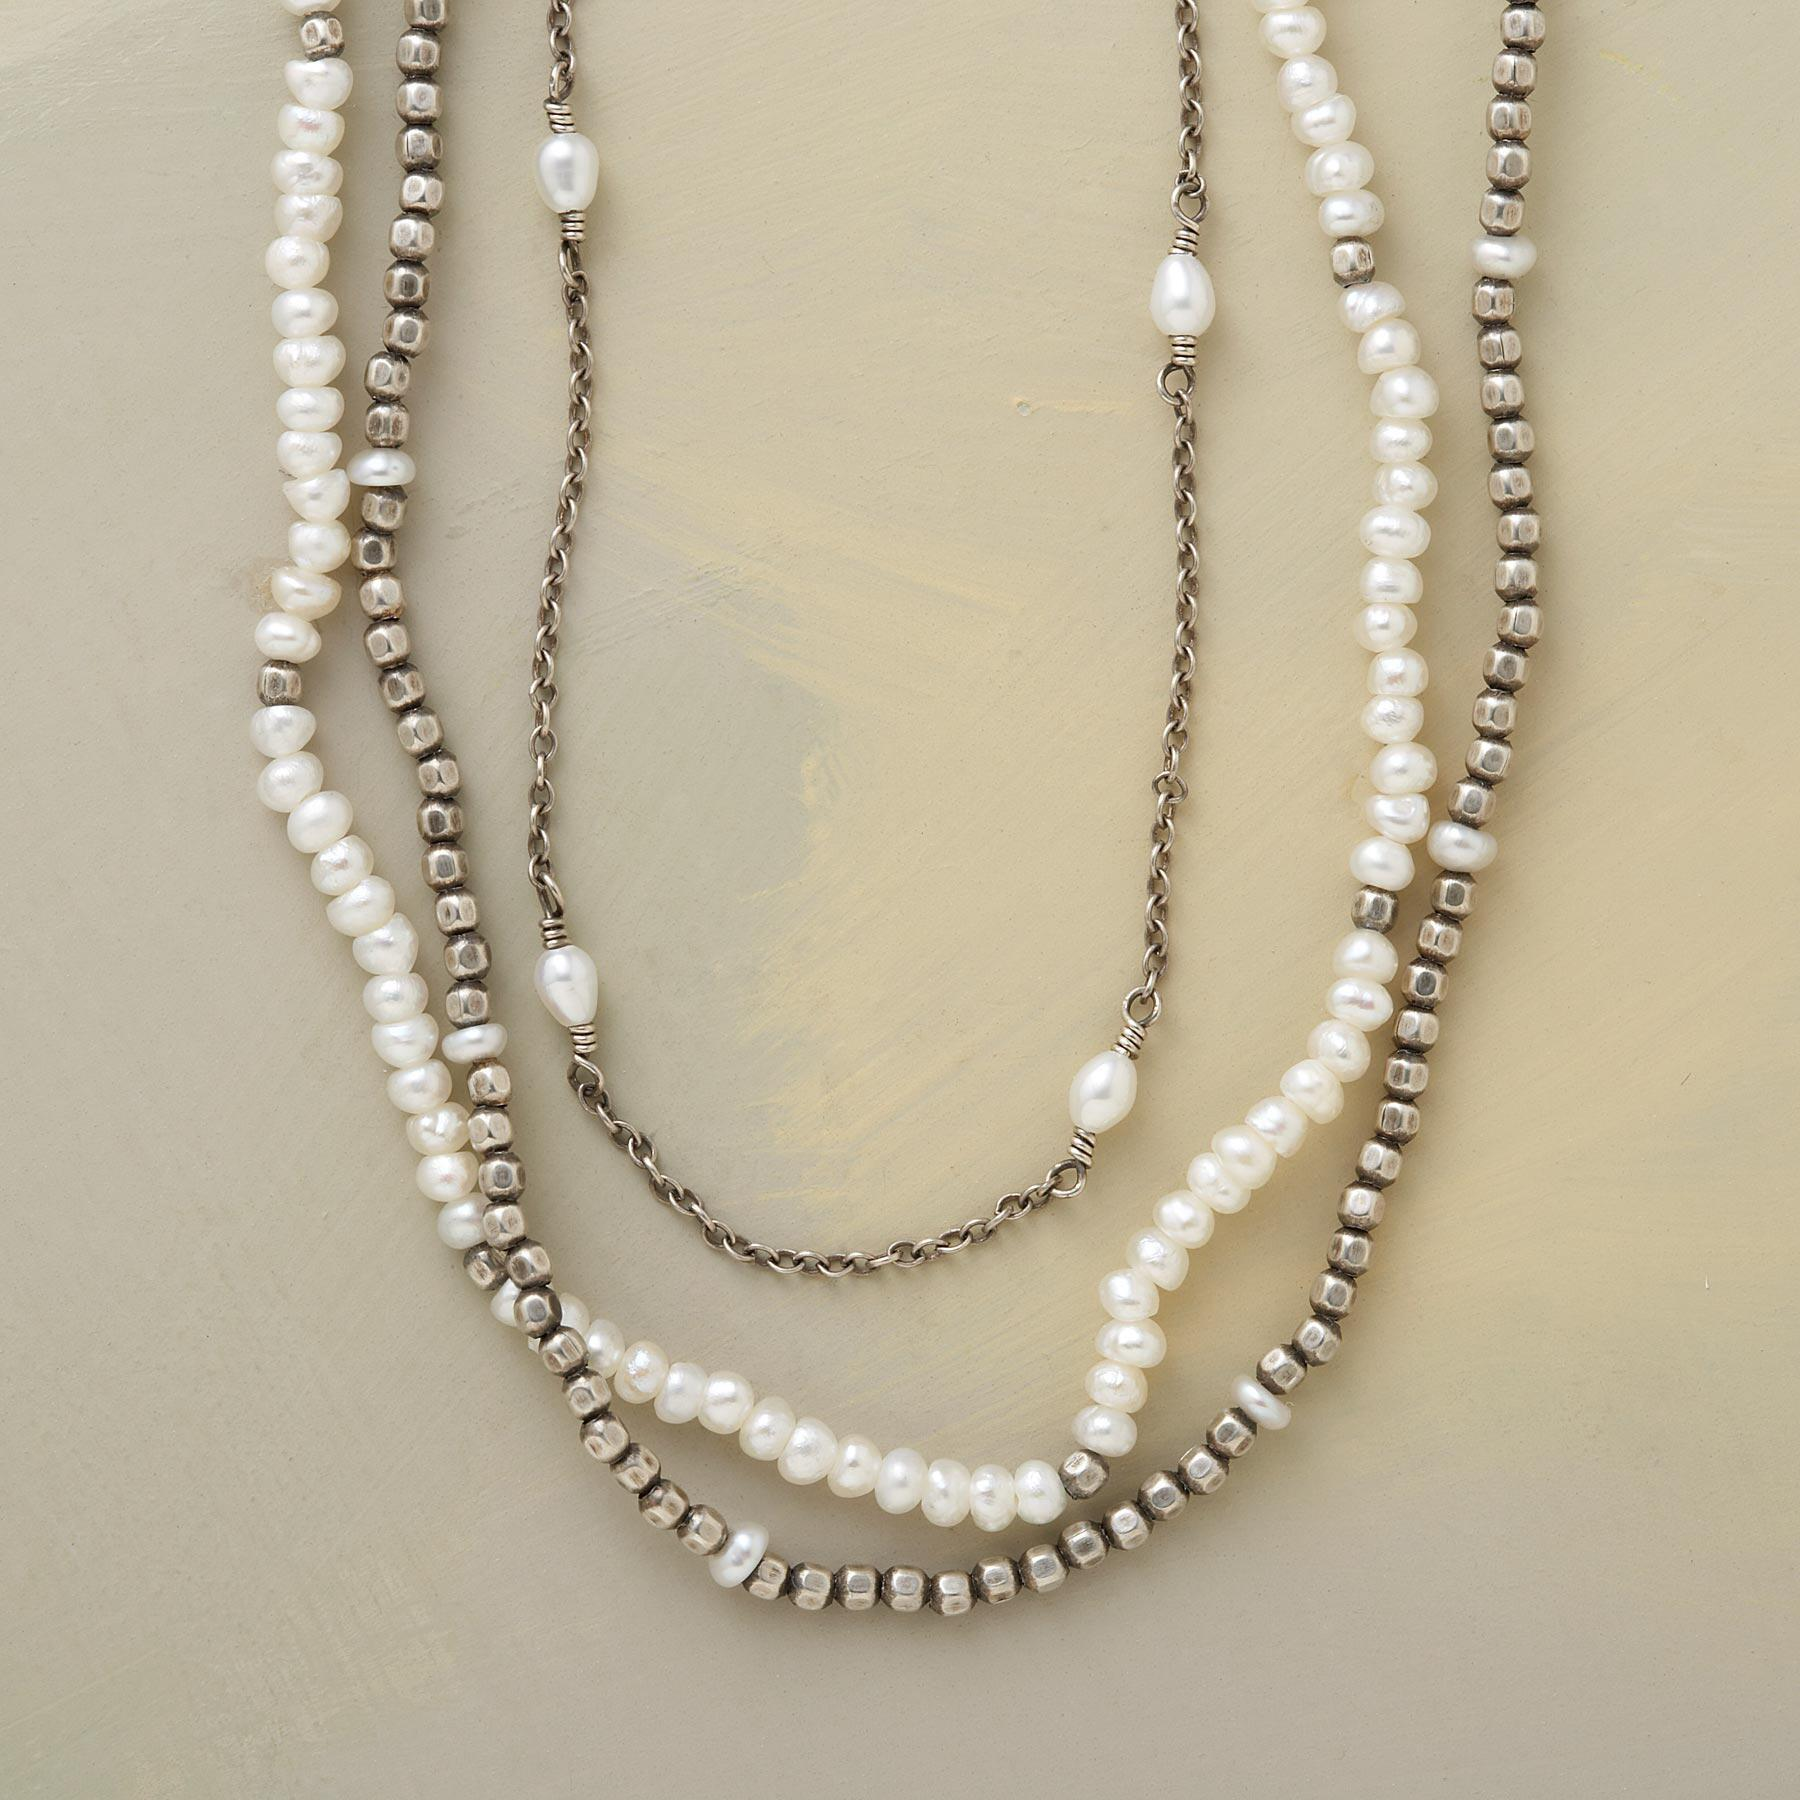 VICE VERSA PEARL NECKLACE: View 1